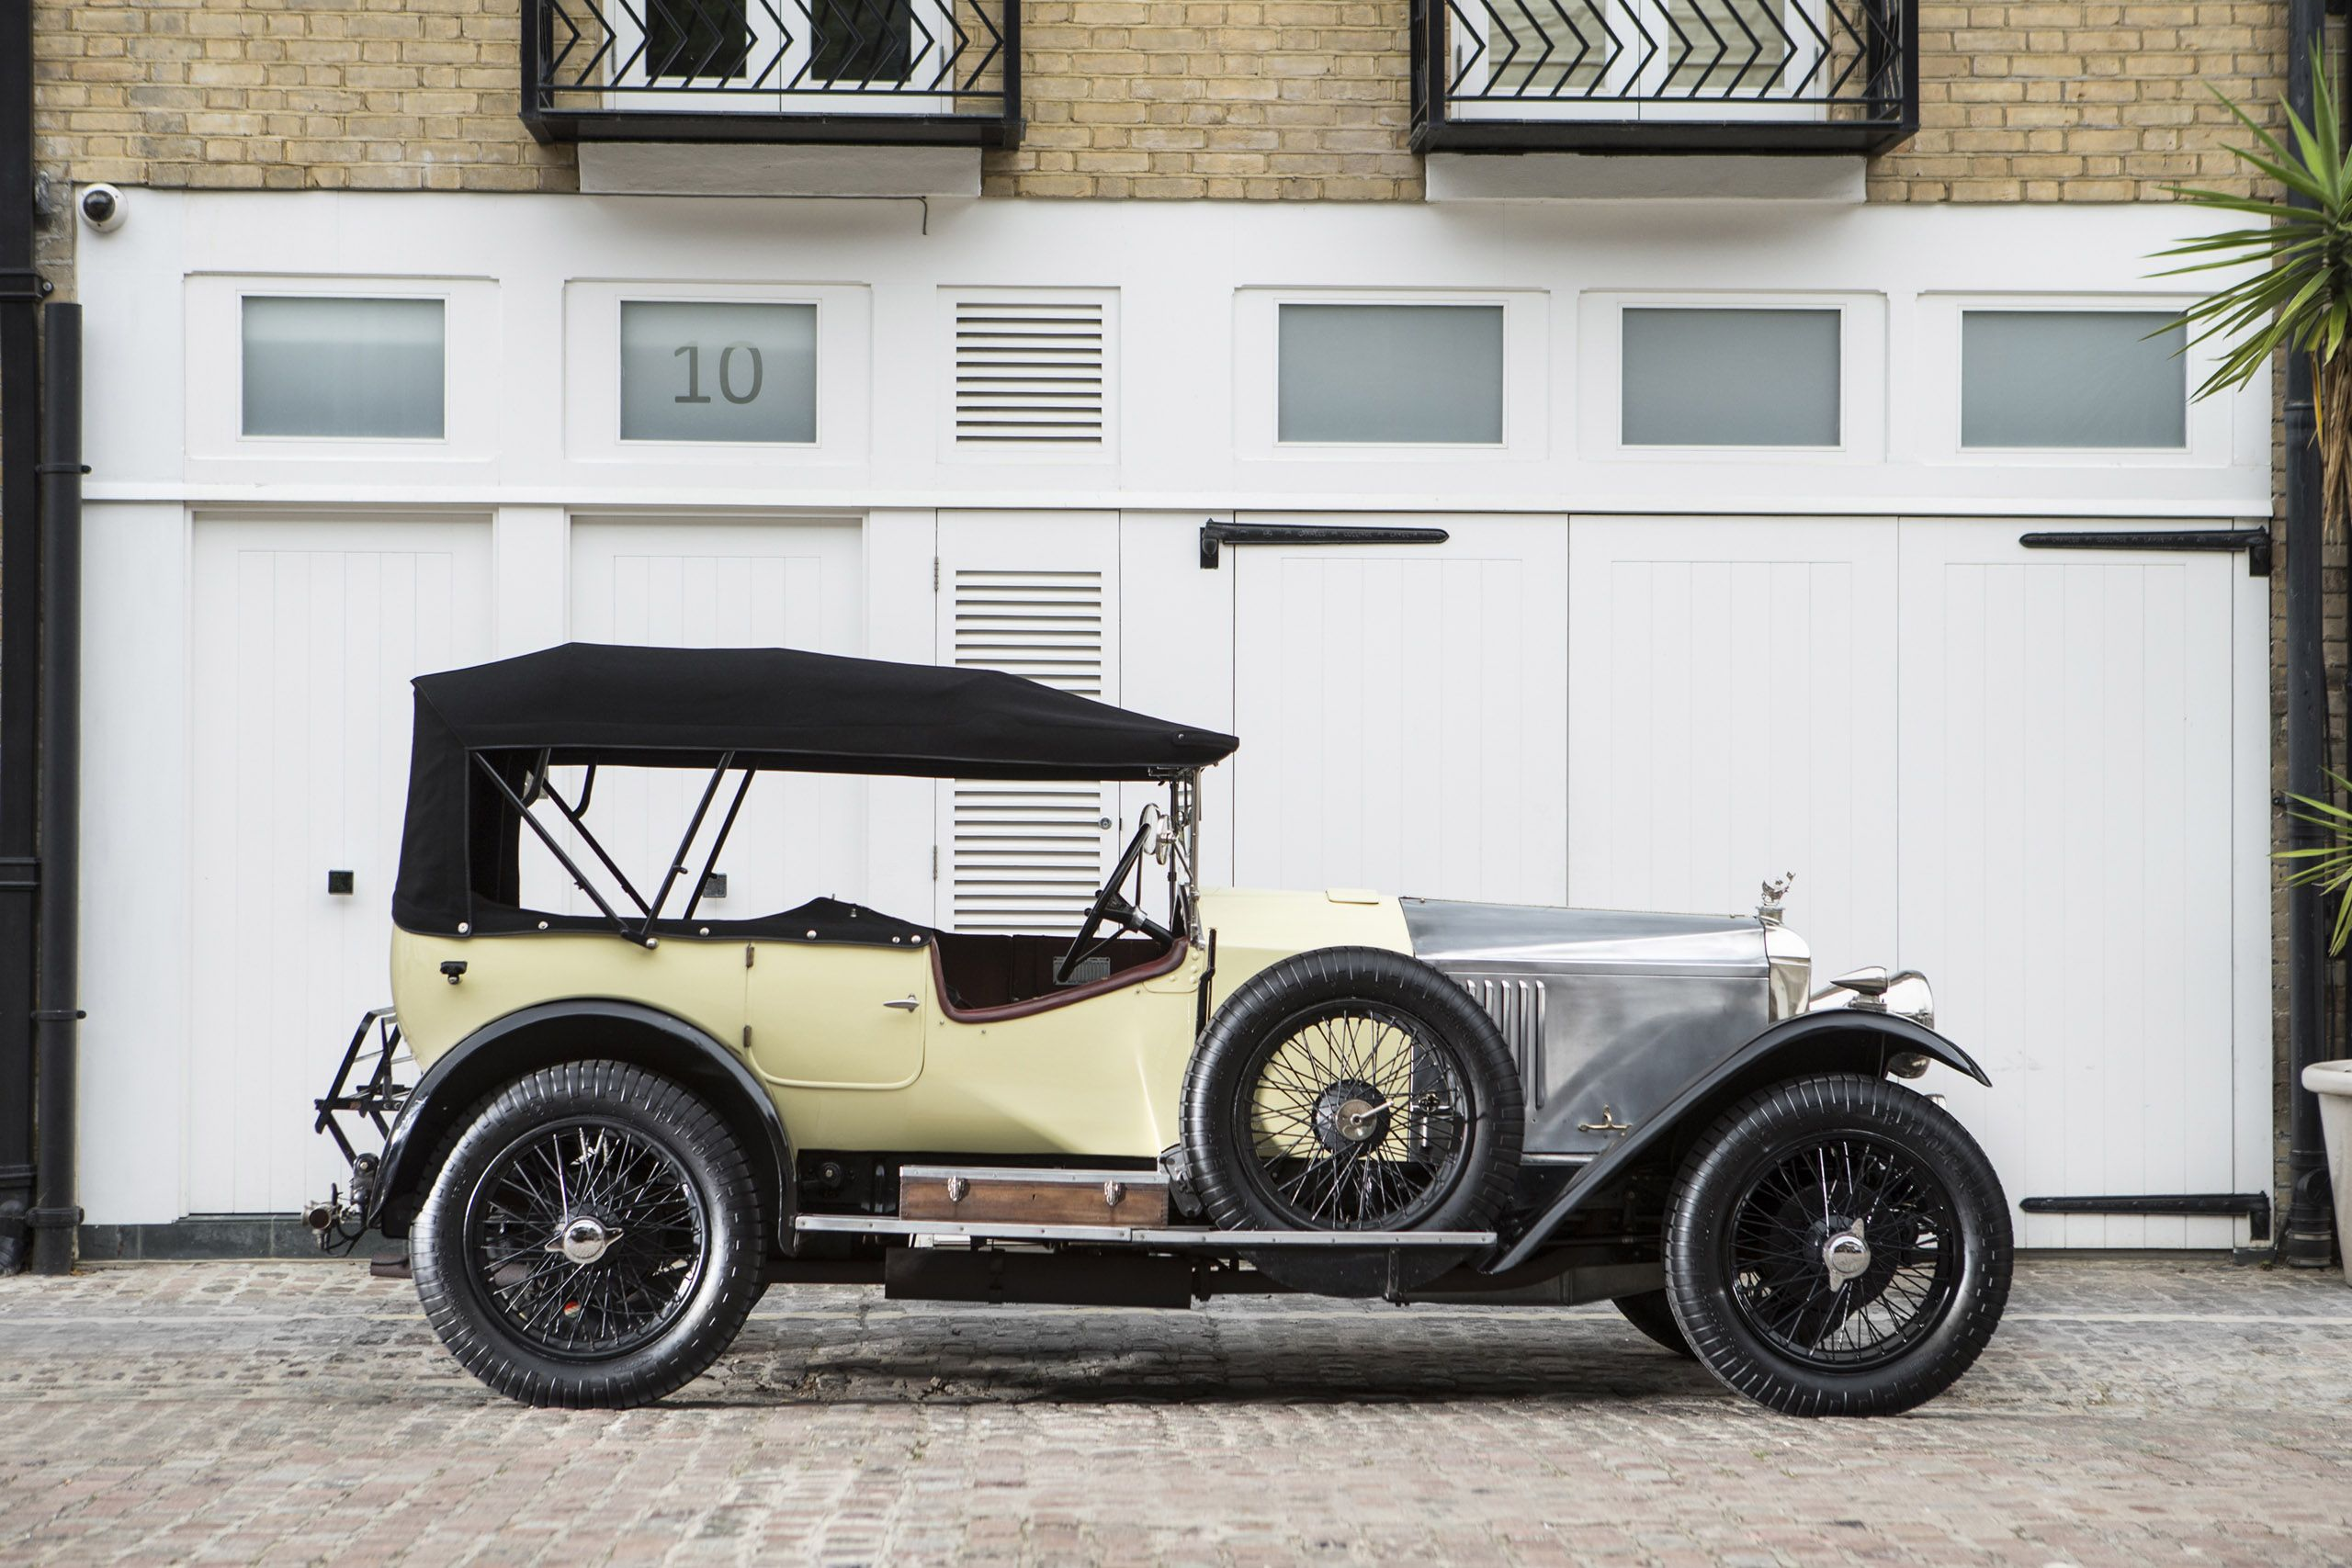 1925 Vauxhall 30/98 | Cars for sale | FISKENS | Antique cars ...